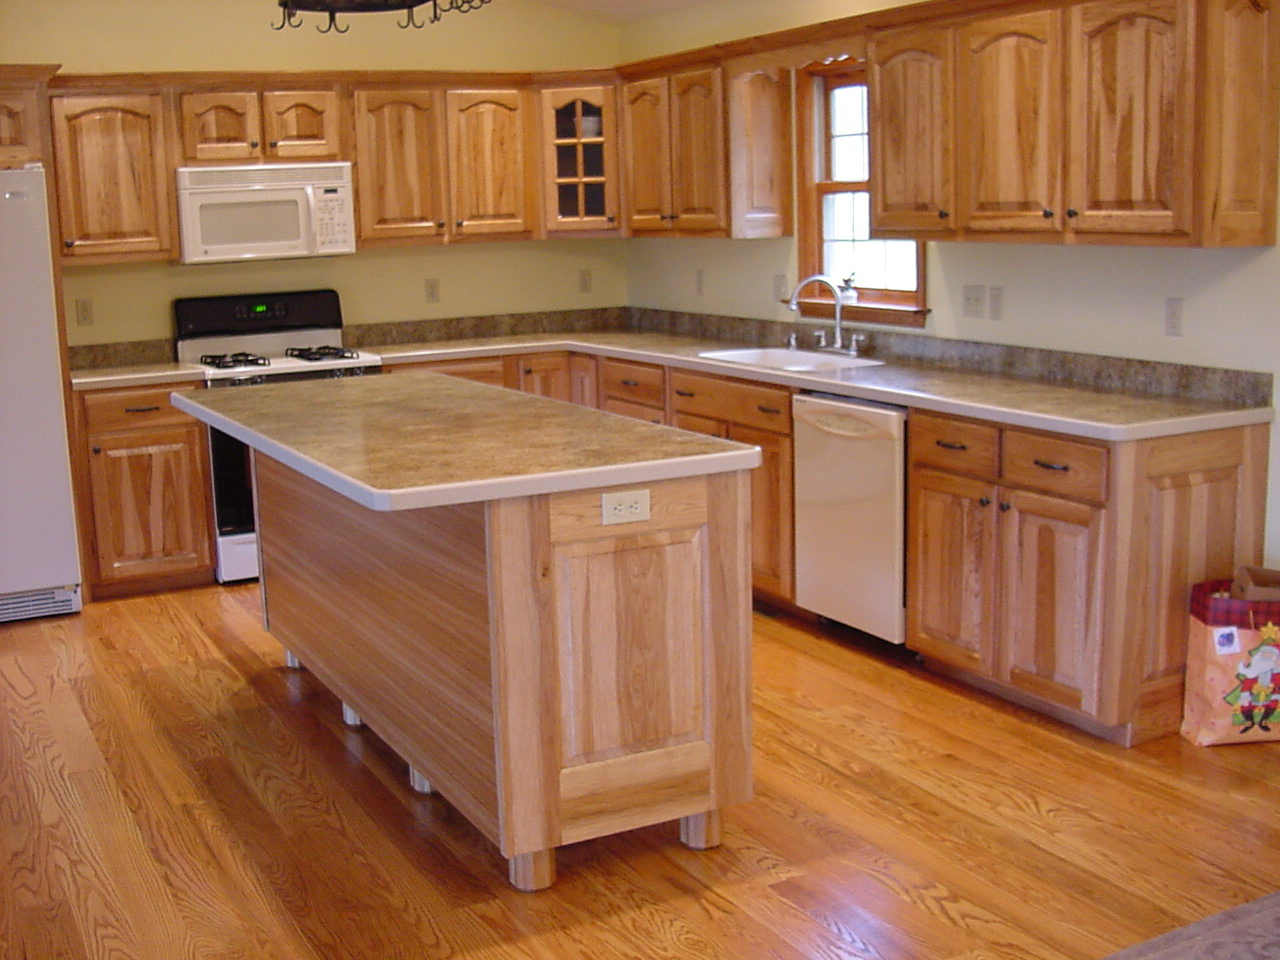 best kitchens ideas granite countertop countertops gallery kitchen cabinets white for images